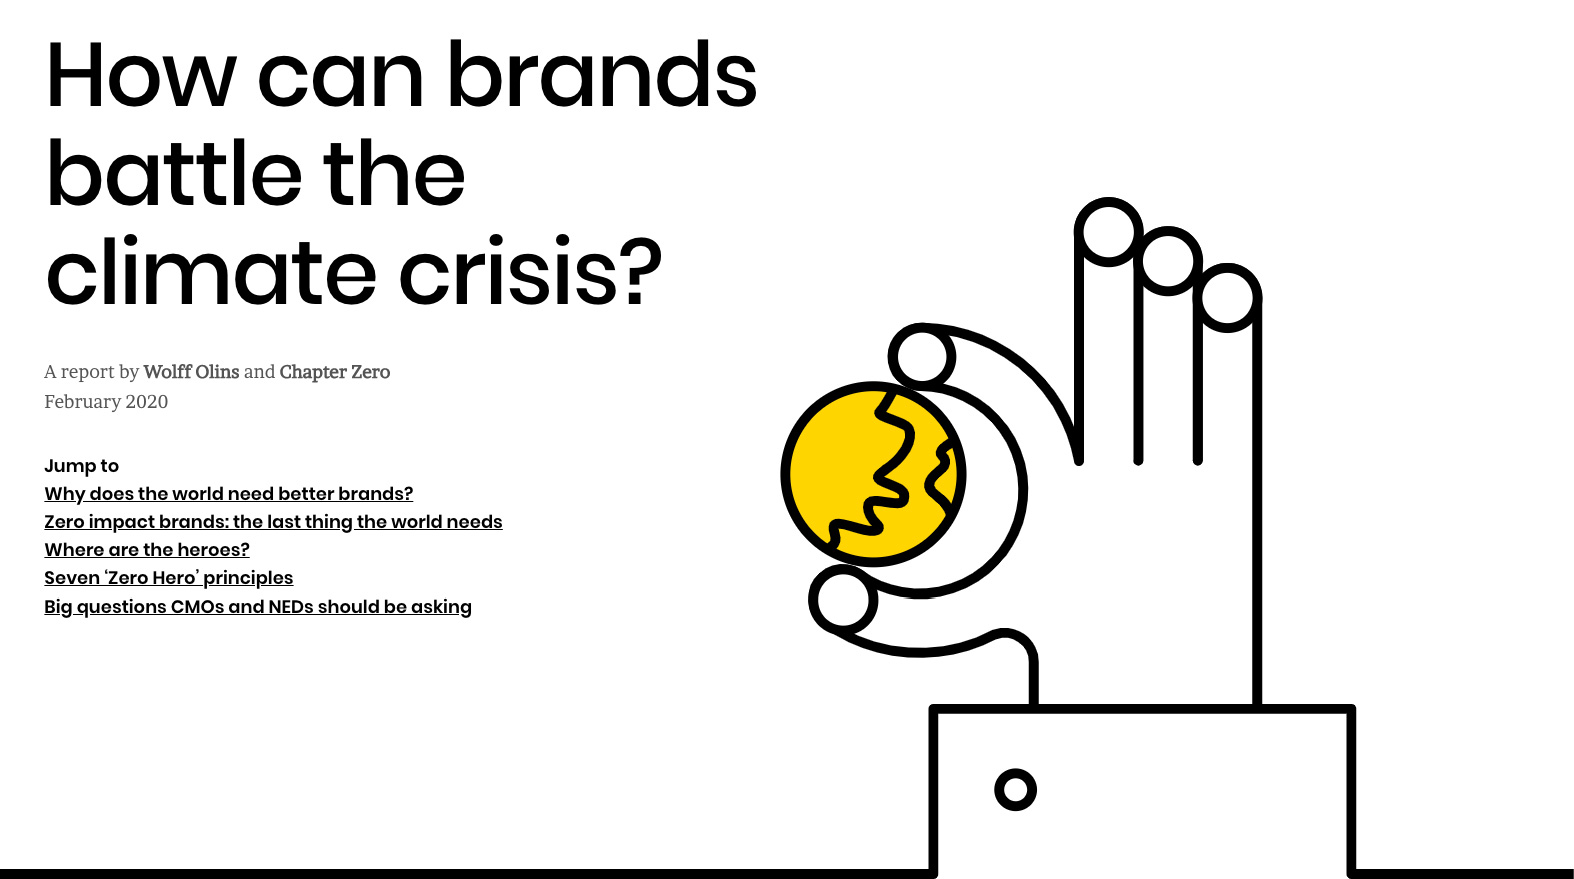 Brands and Climate Change